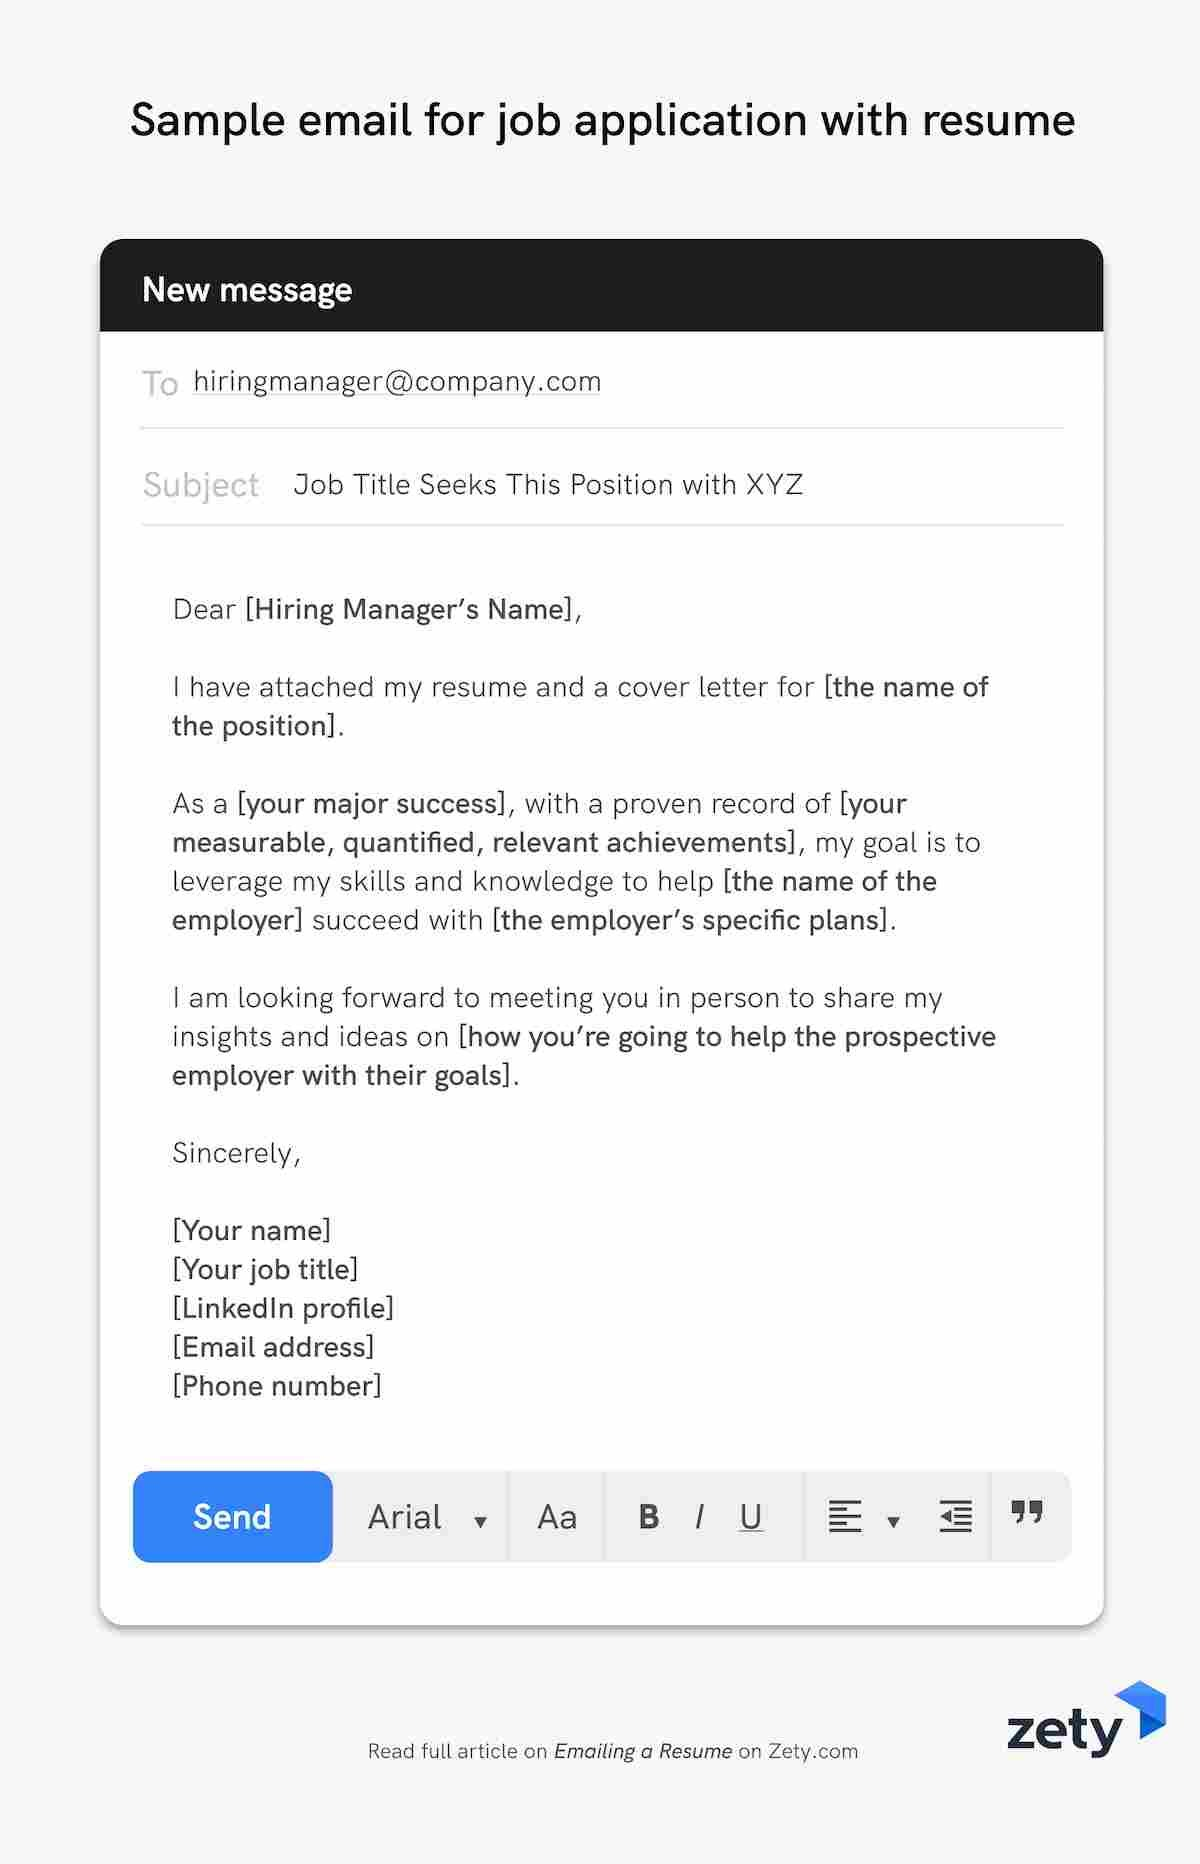 emailing resume job application email samples submitting your via sample for with best Resume Submitting Your Resume Via Email